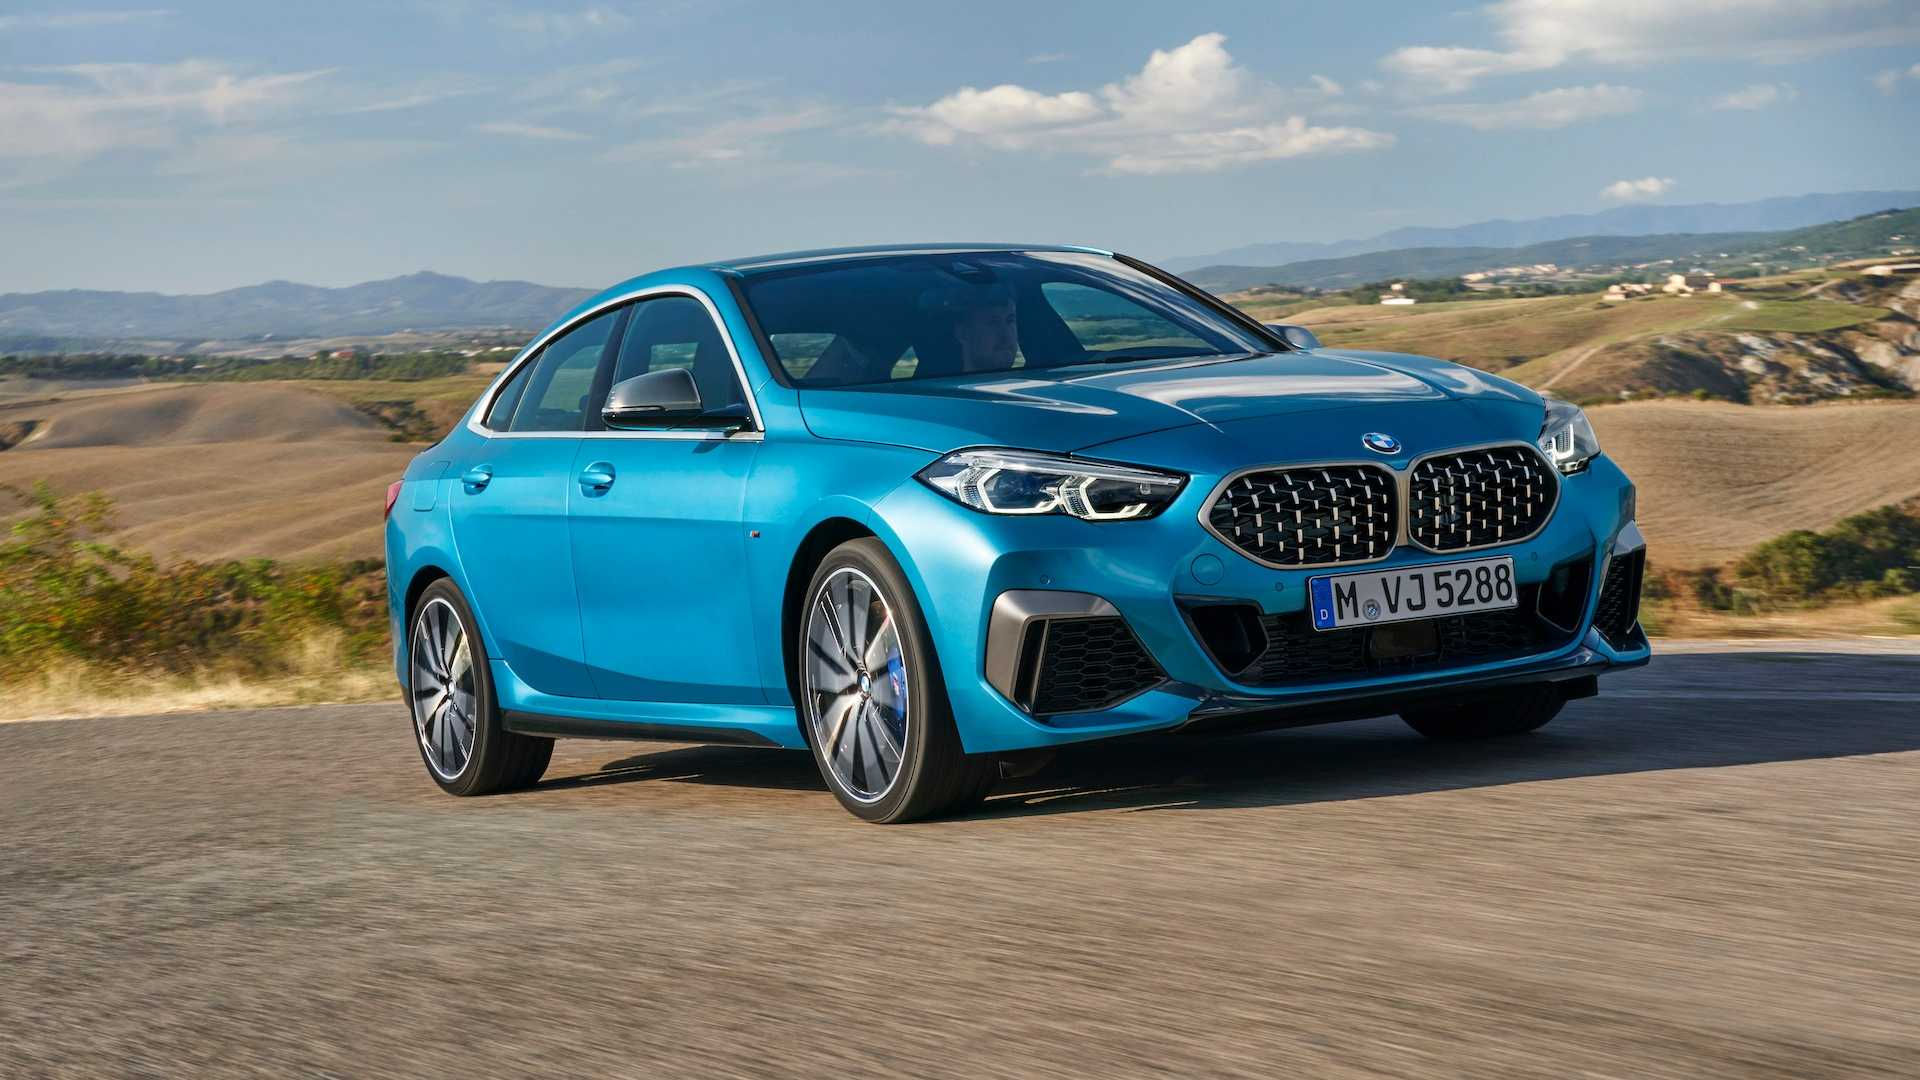 2020-bmw-2-series-gran-coupe-69